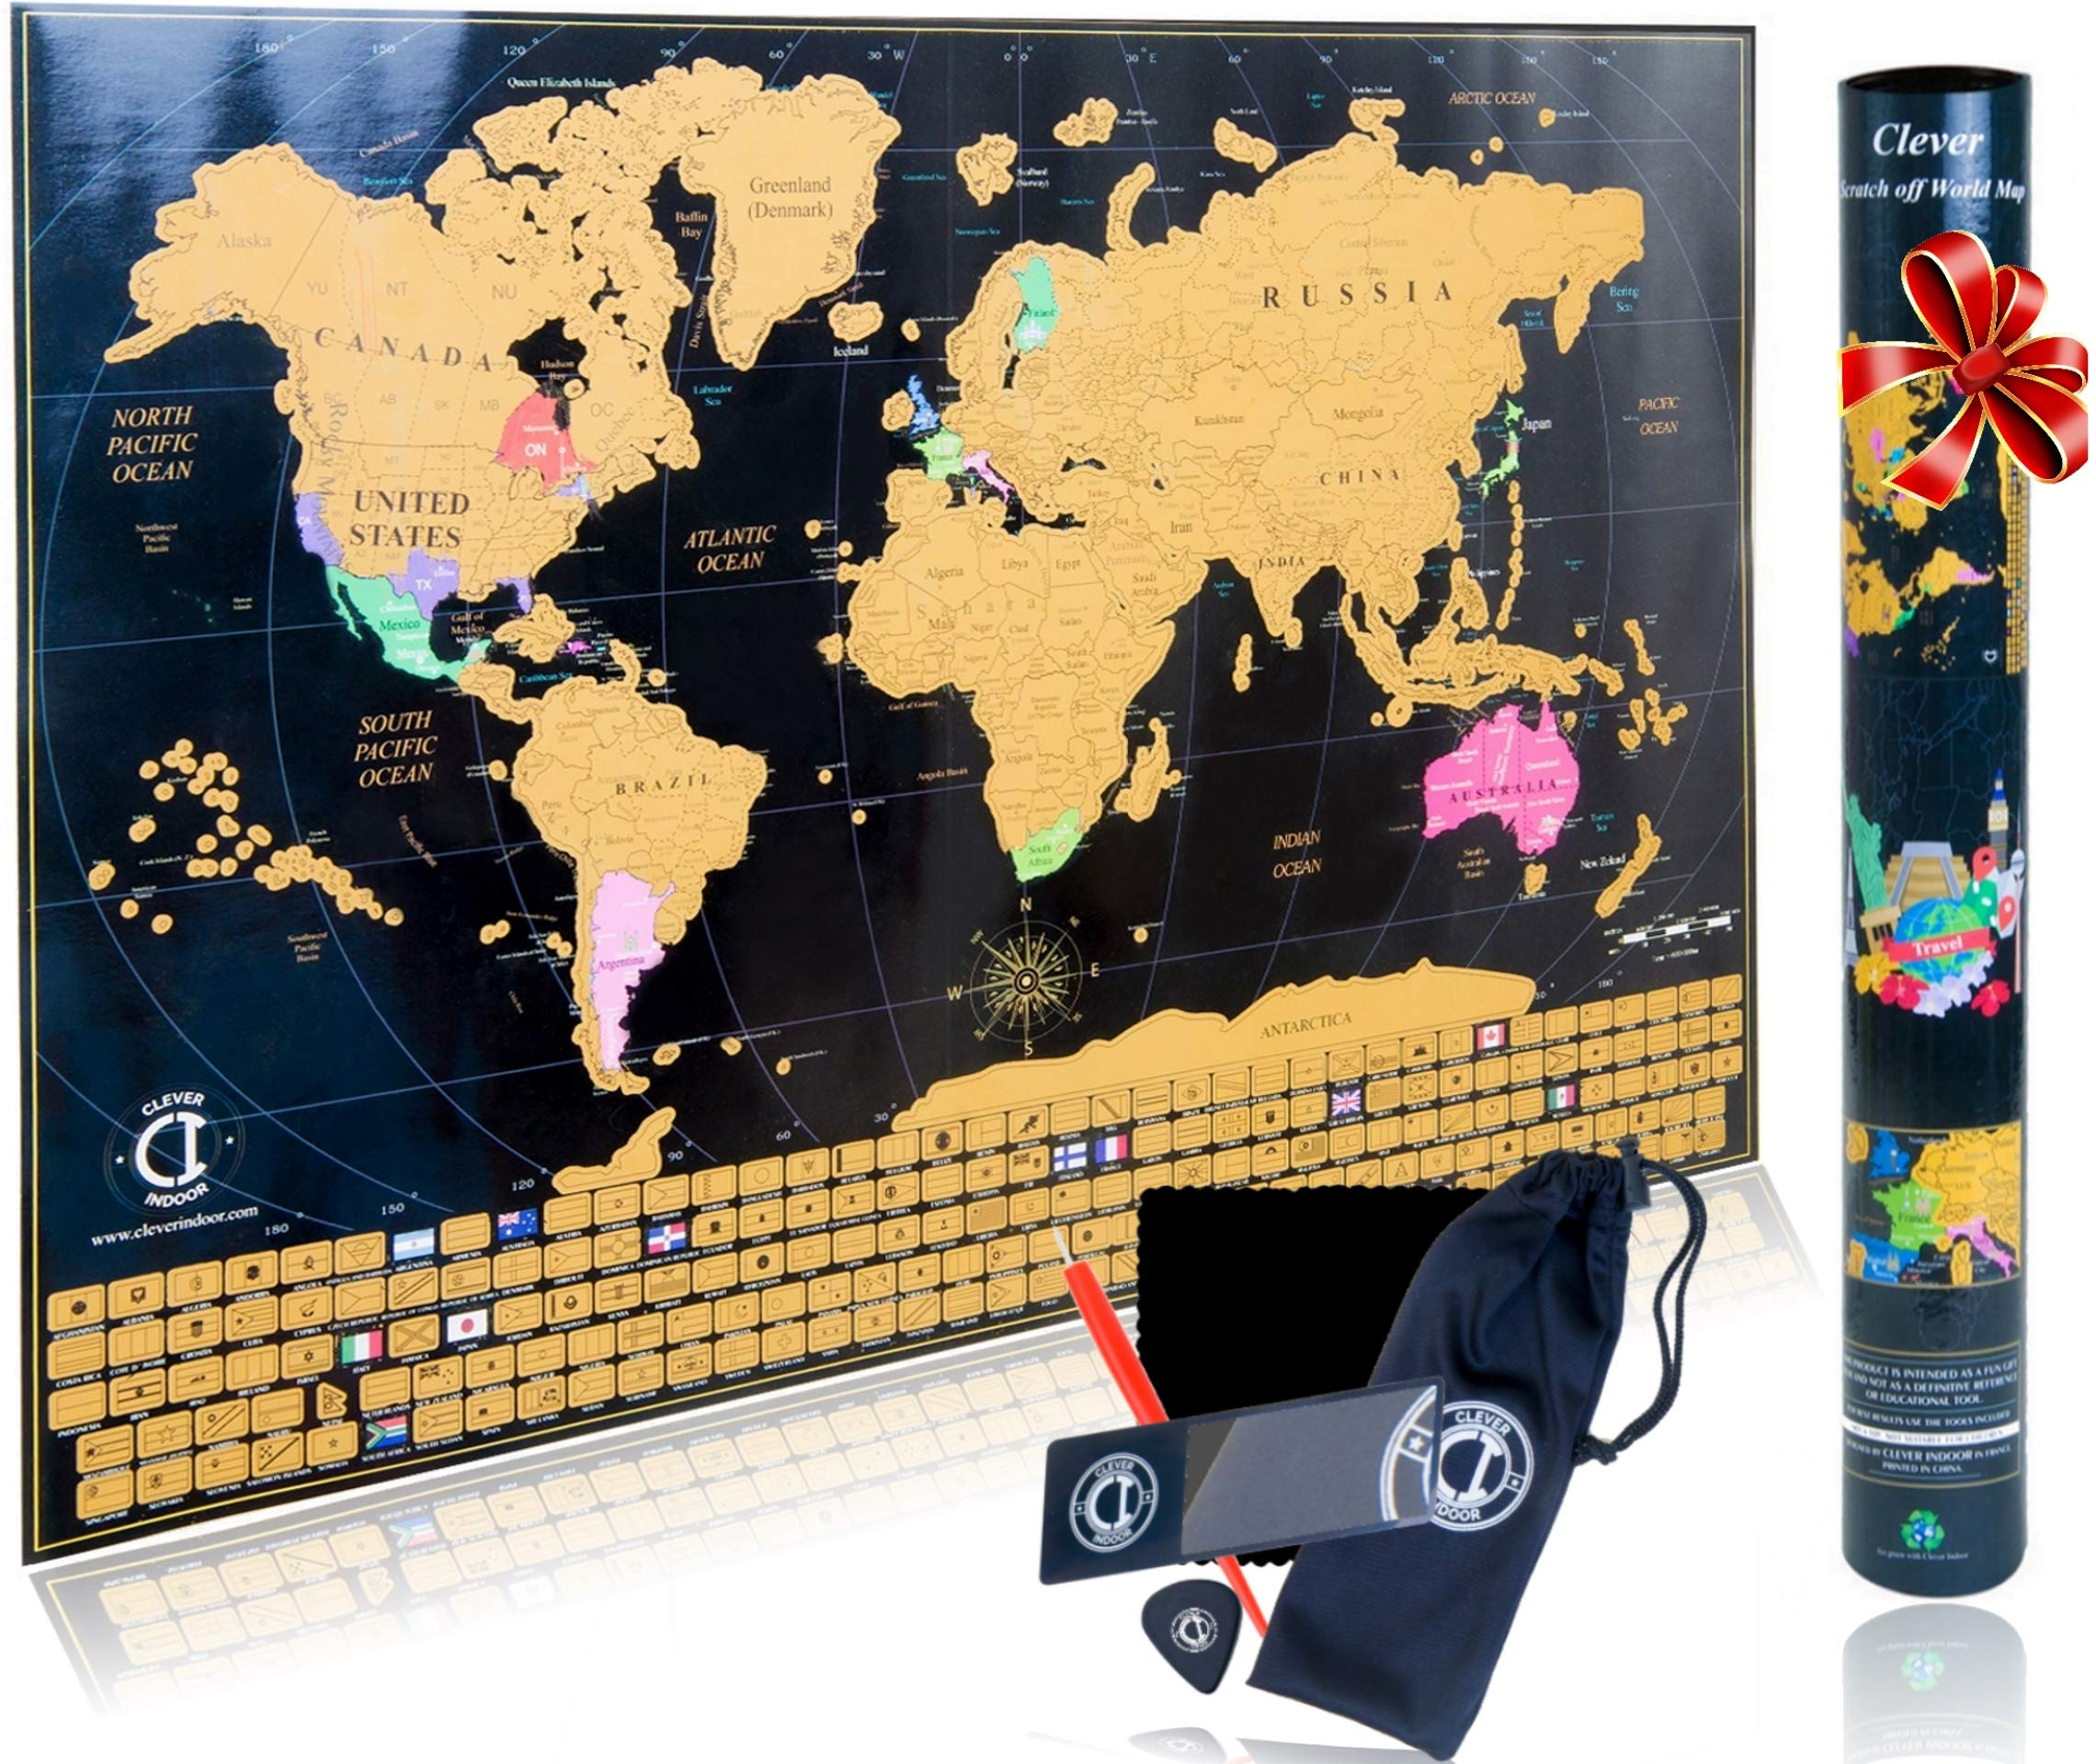 Scratch Off Map of The World Poster - Travel Map Tracker with US States Outlined and Country Flags, Bright and Vibrant Colors. Perfect Traveler Gift. Includes Scratcher Tools. by Clever Indoor.